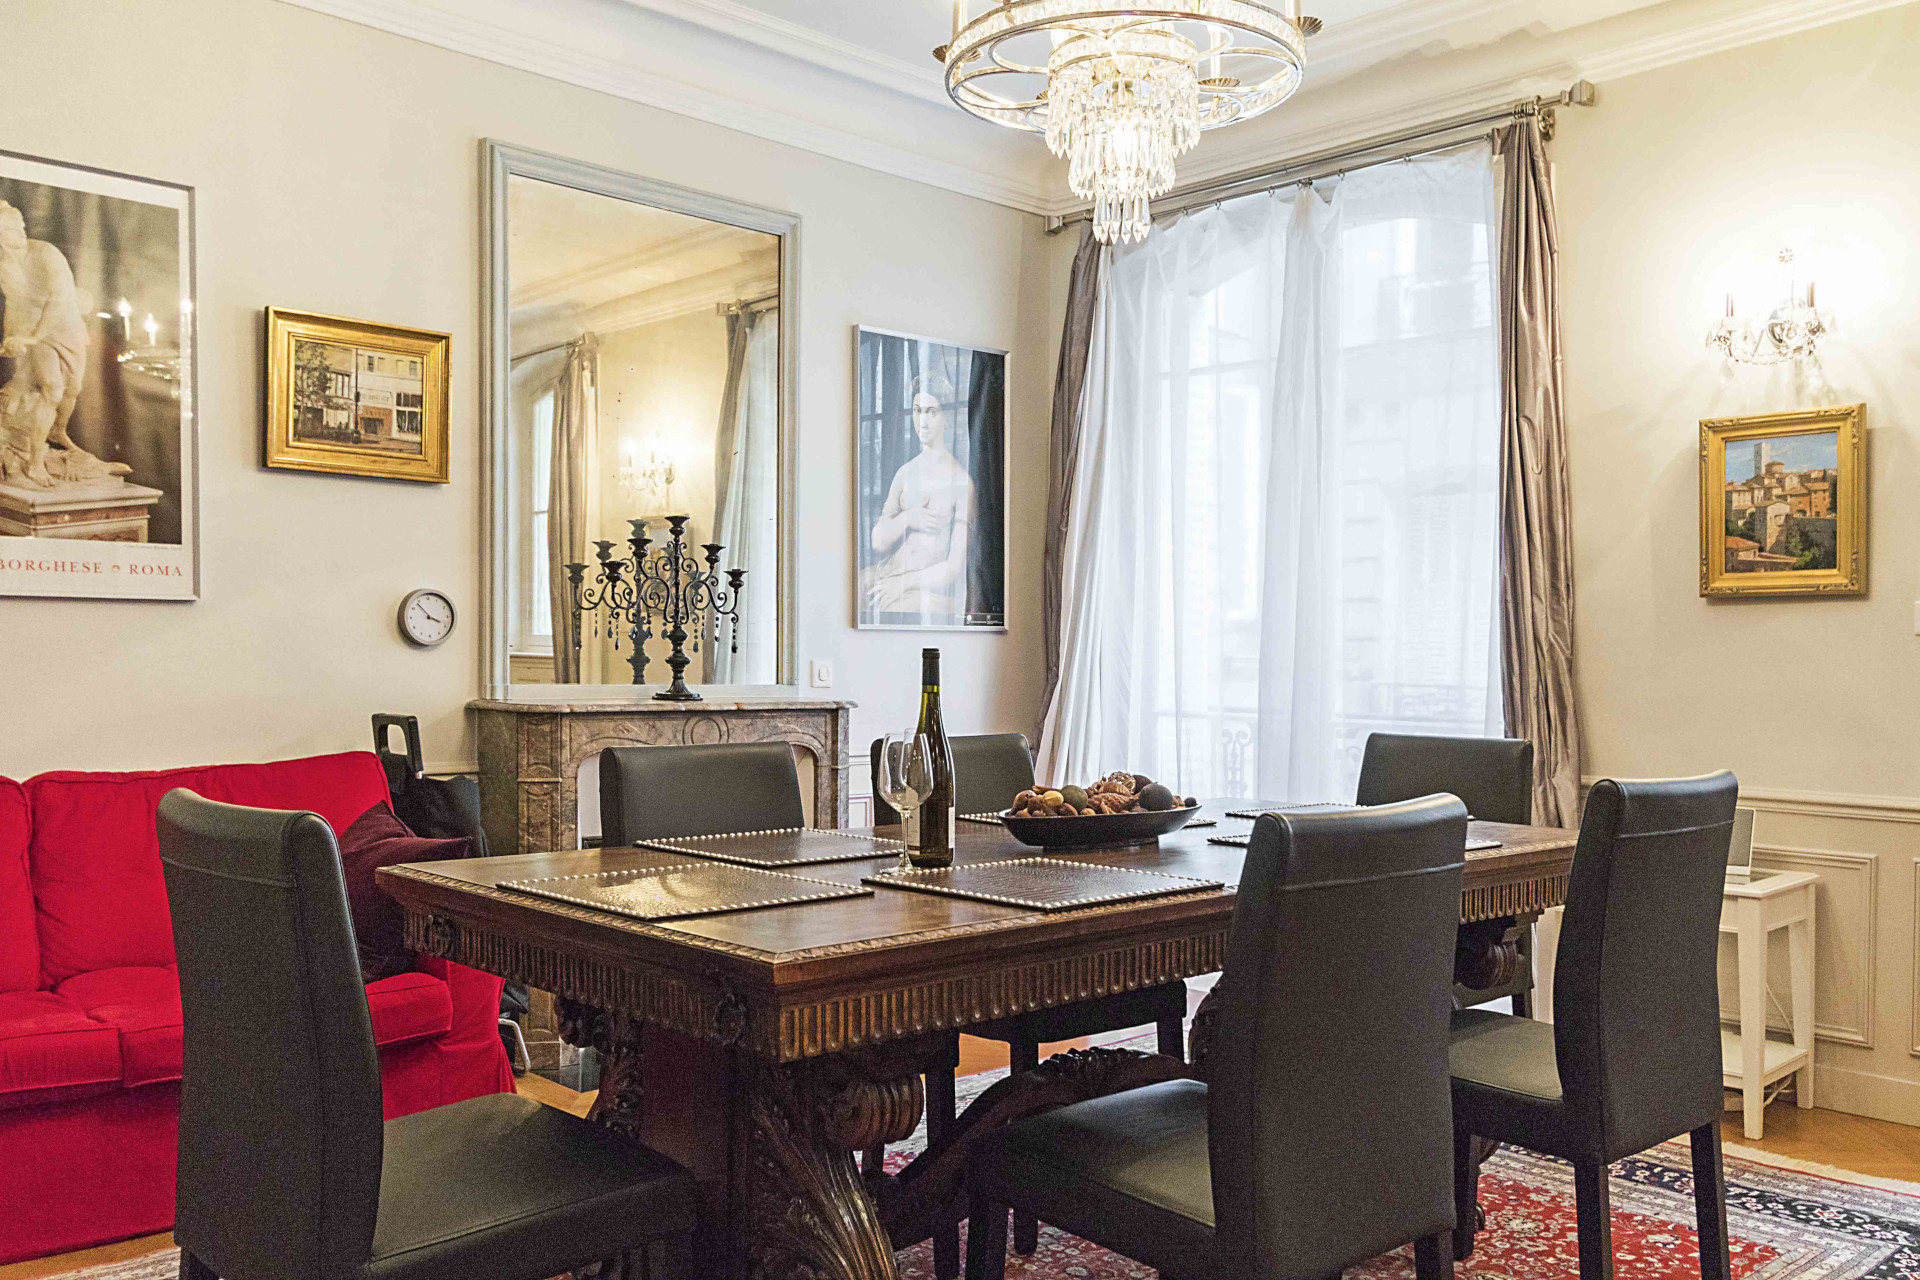 Beautiful living space perfect for small groups in the Roannaise Paris Perfect vacation rental